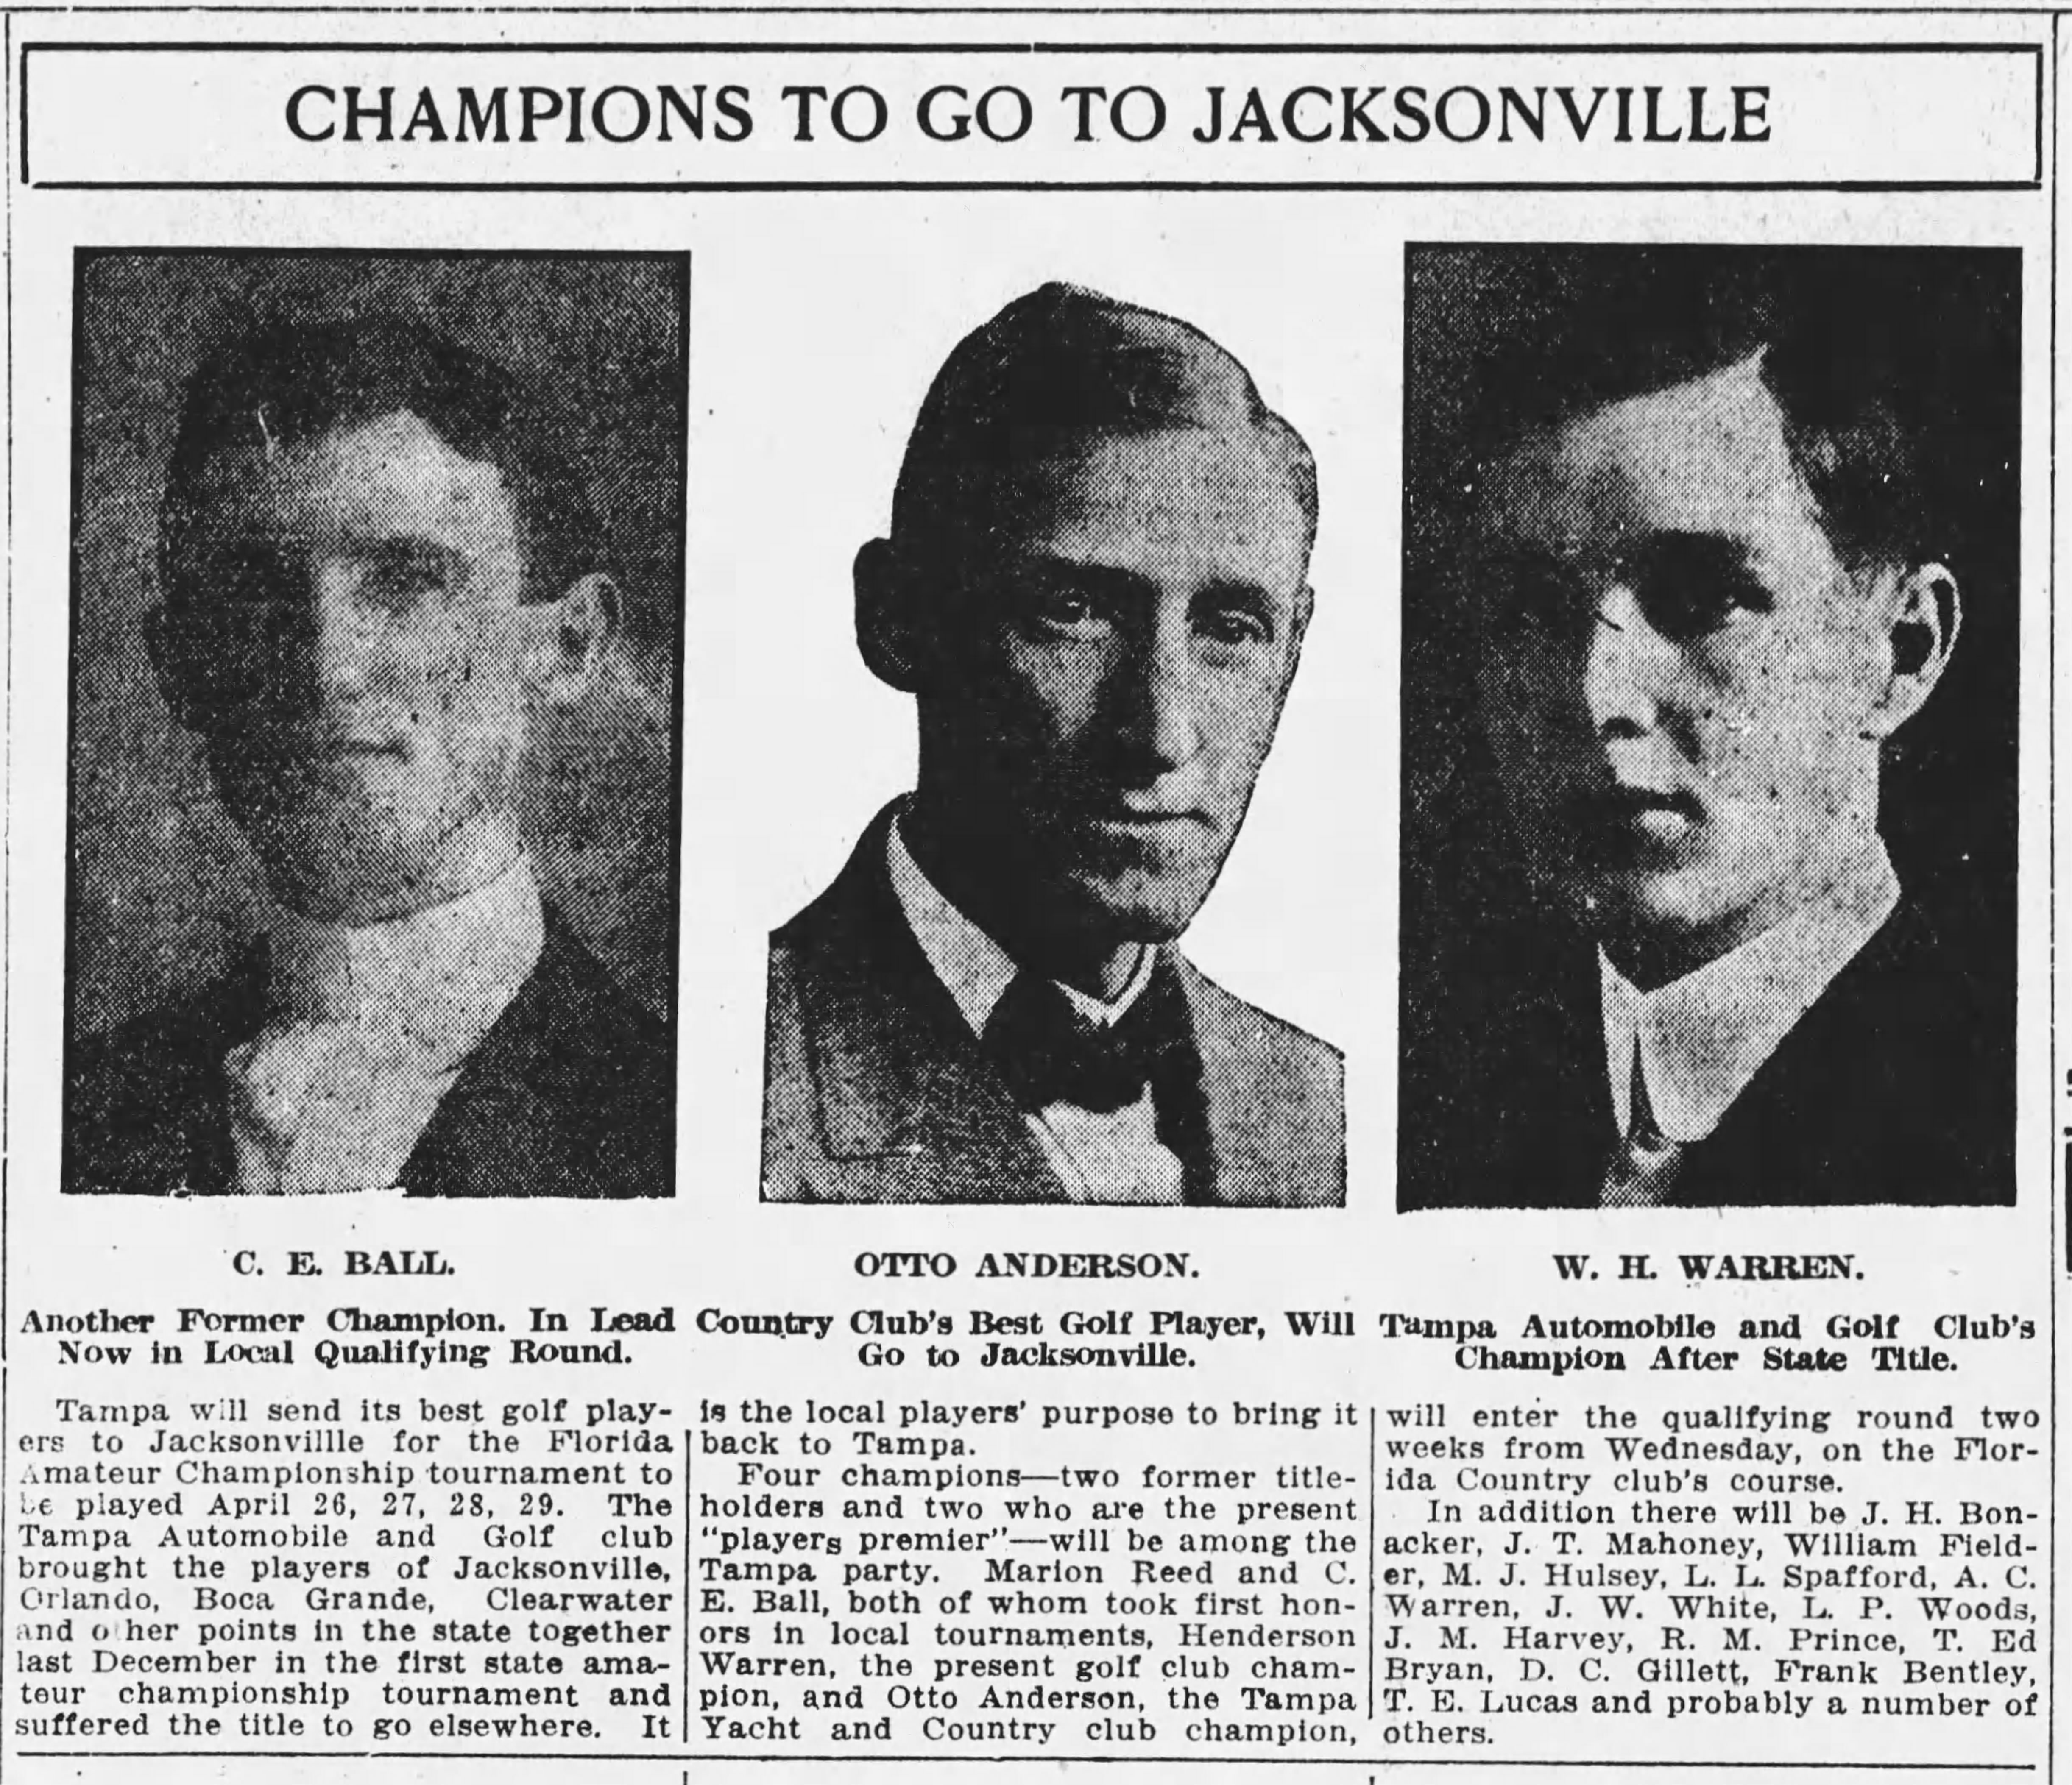 Tampa Automobile and Golf Club's Champion After State Title - Apr 11, 1916 Tampa Times